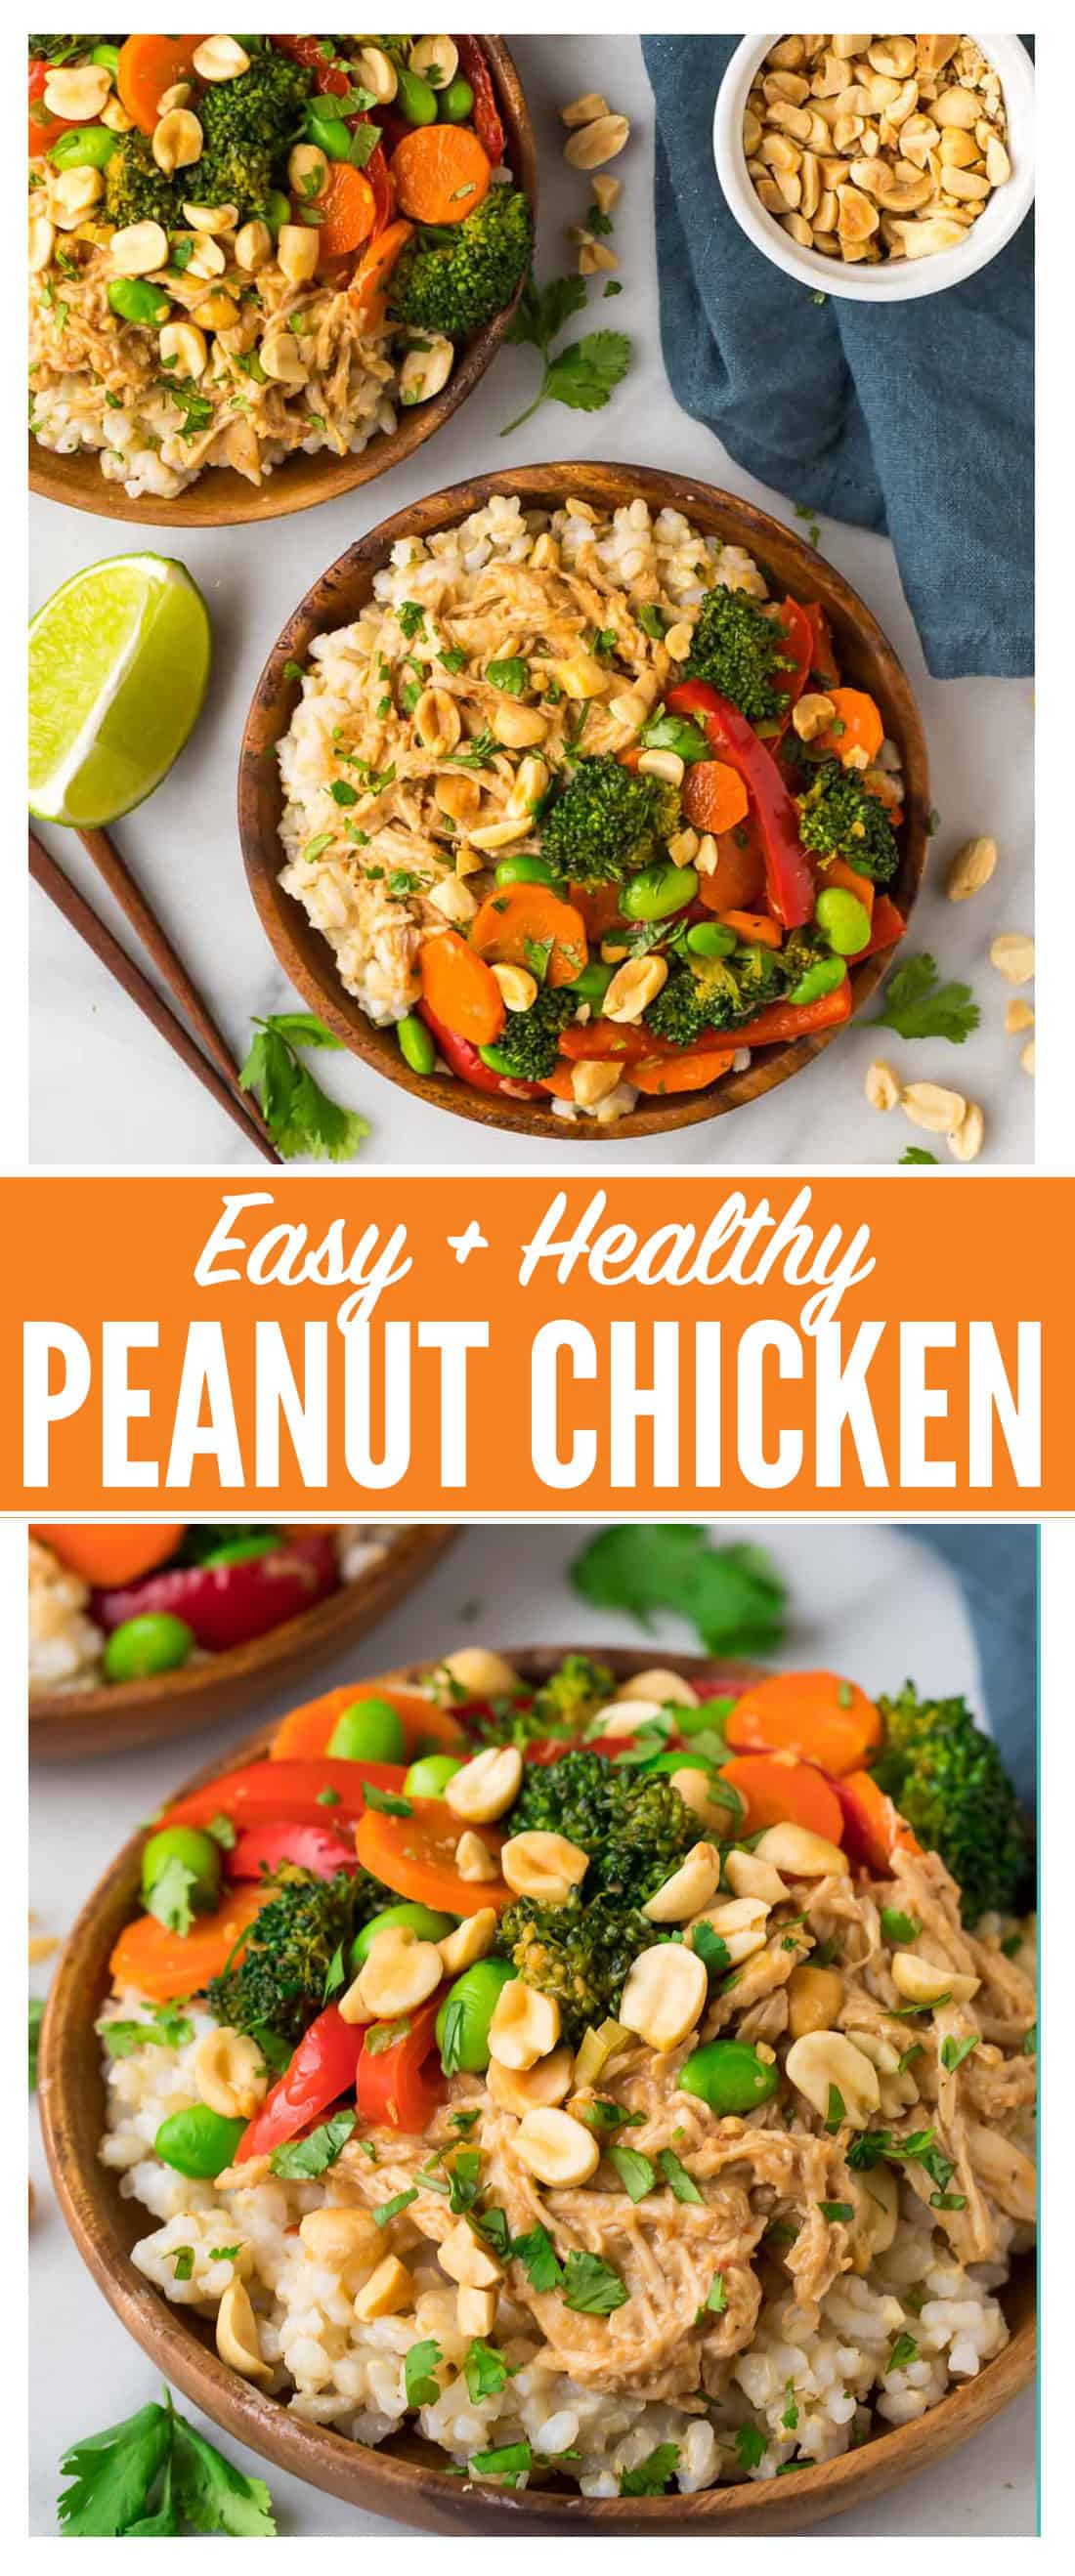 Peanut Chicken With Veggies And Rice